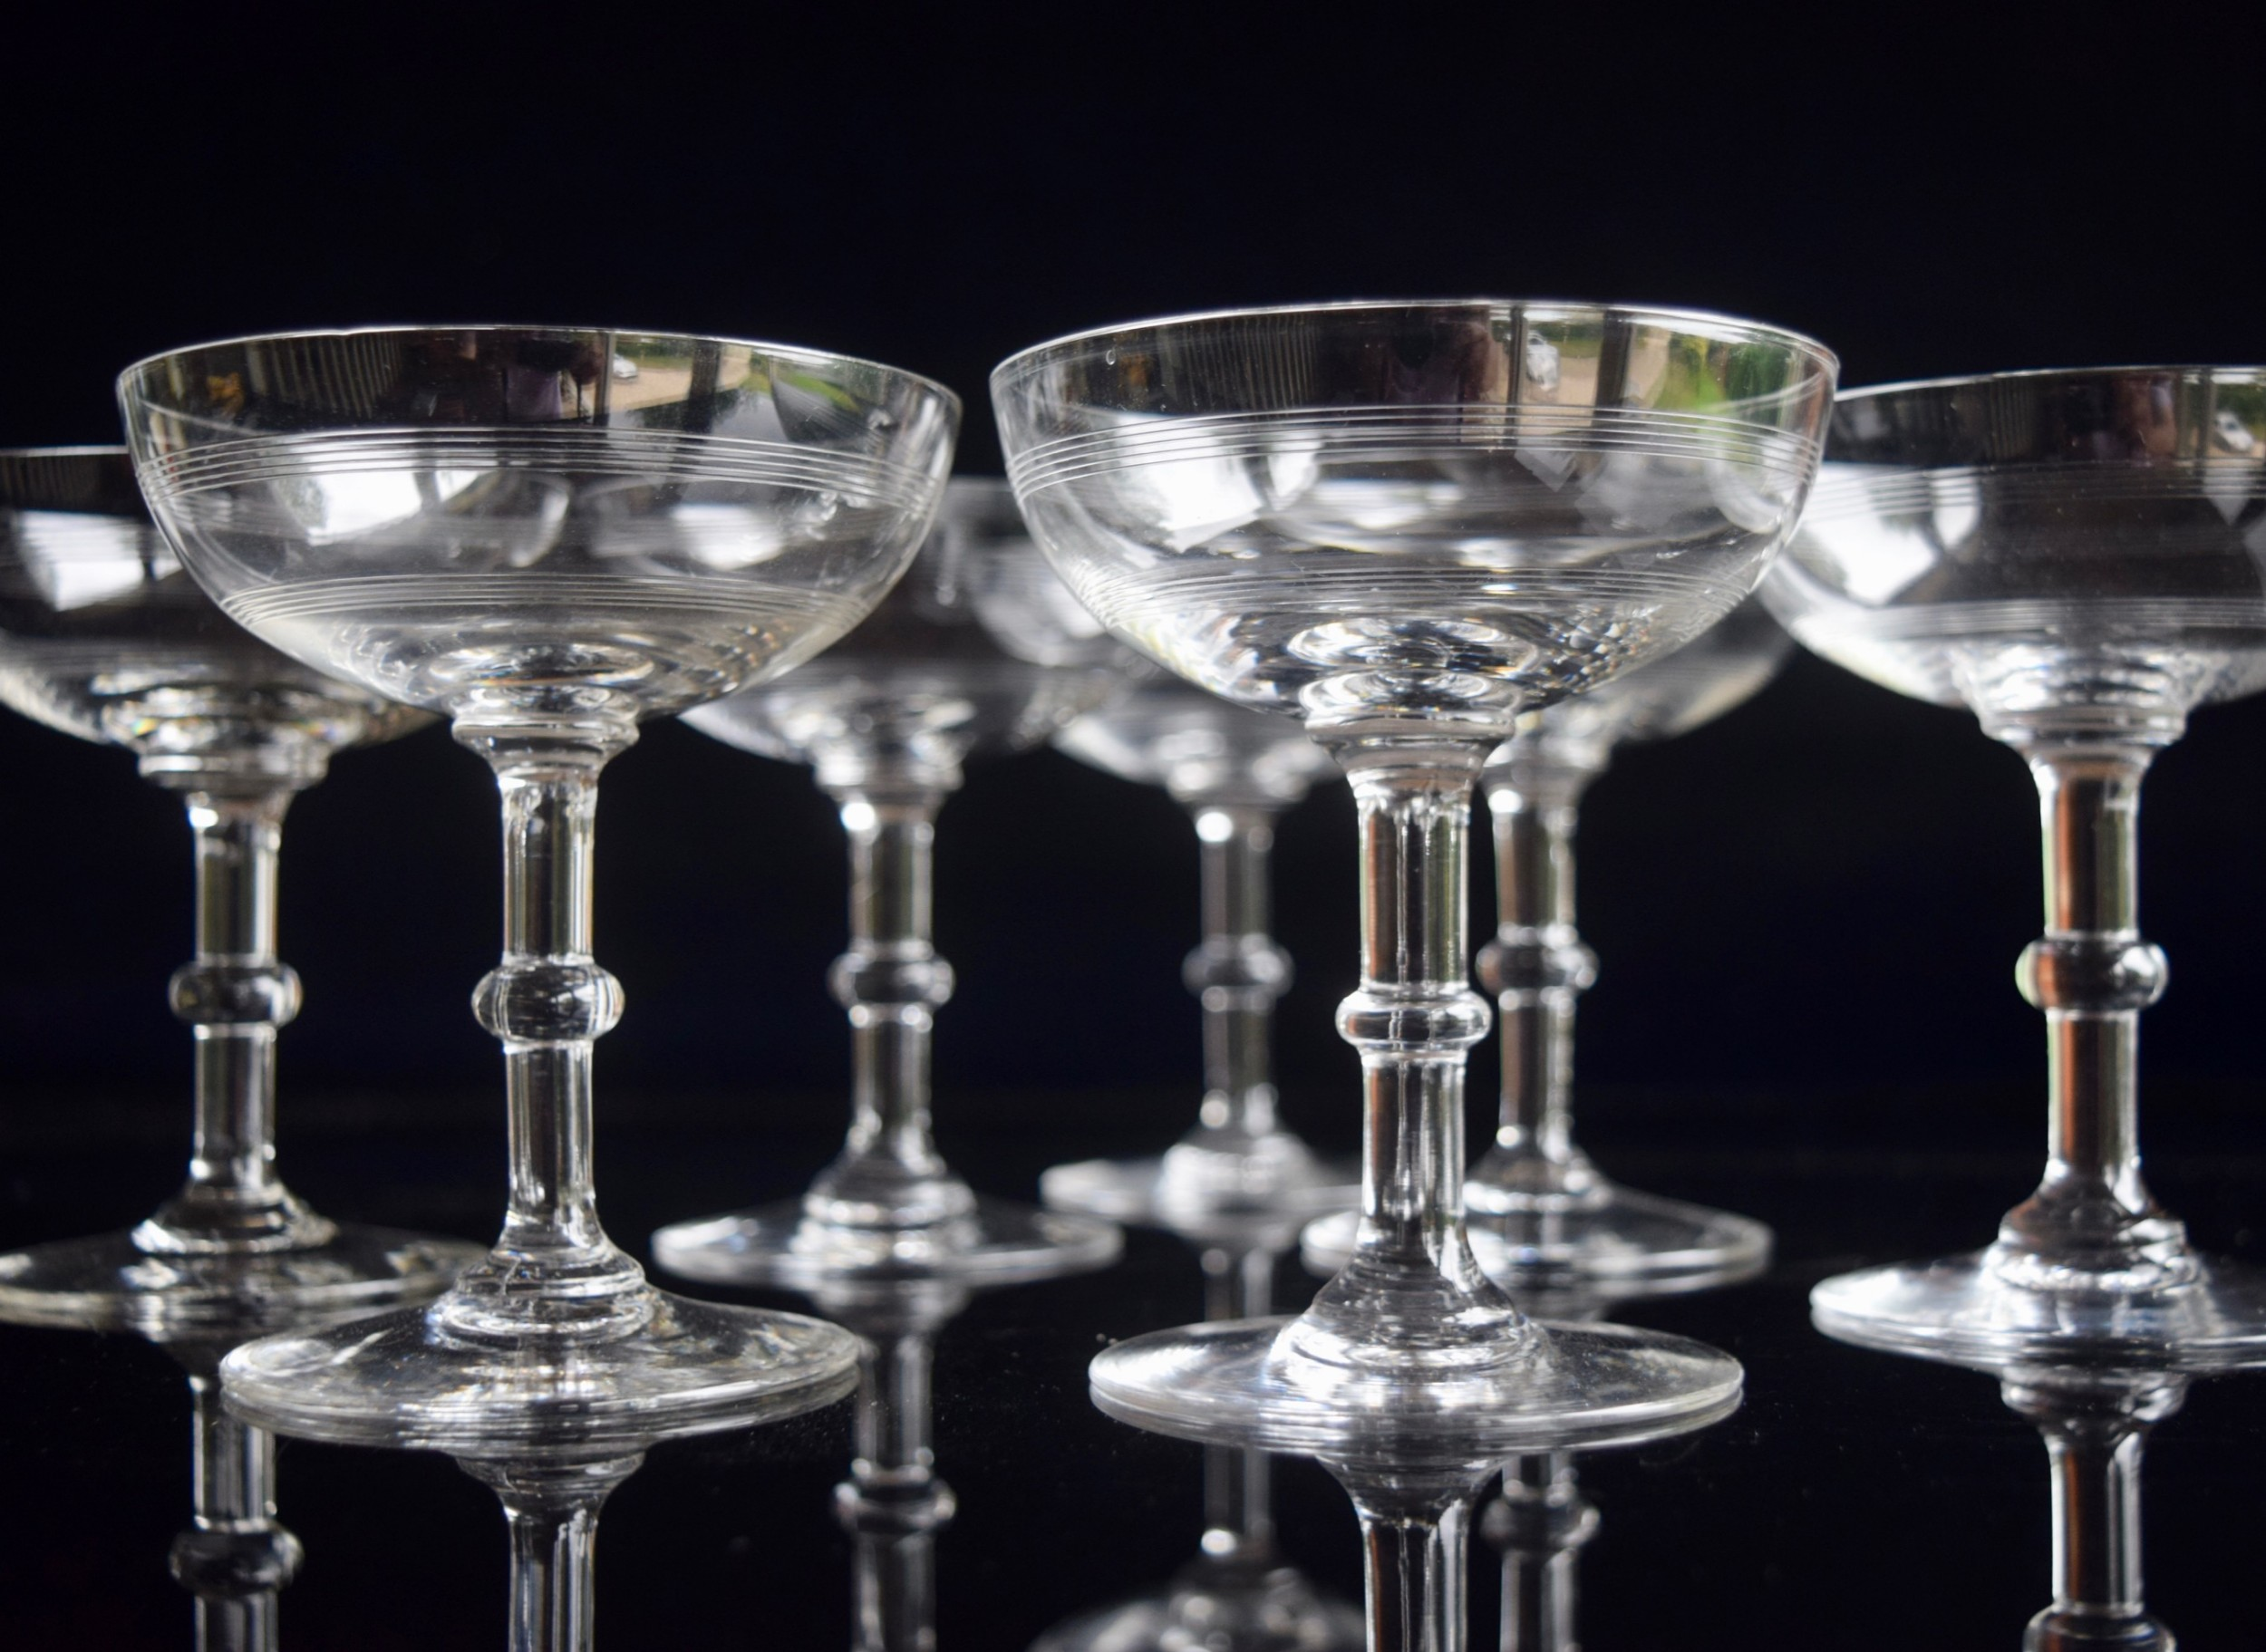 7 Baccarat Crystal Filet Champagne Coupes Belle Epoque 717317 Sellingantiques Co Uk